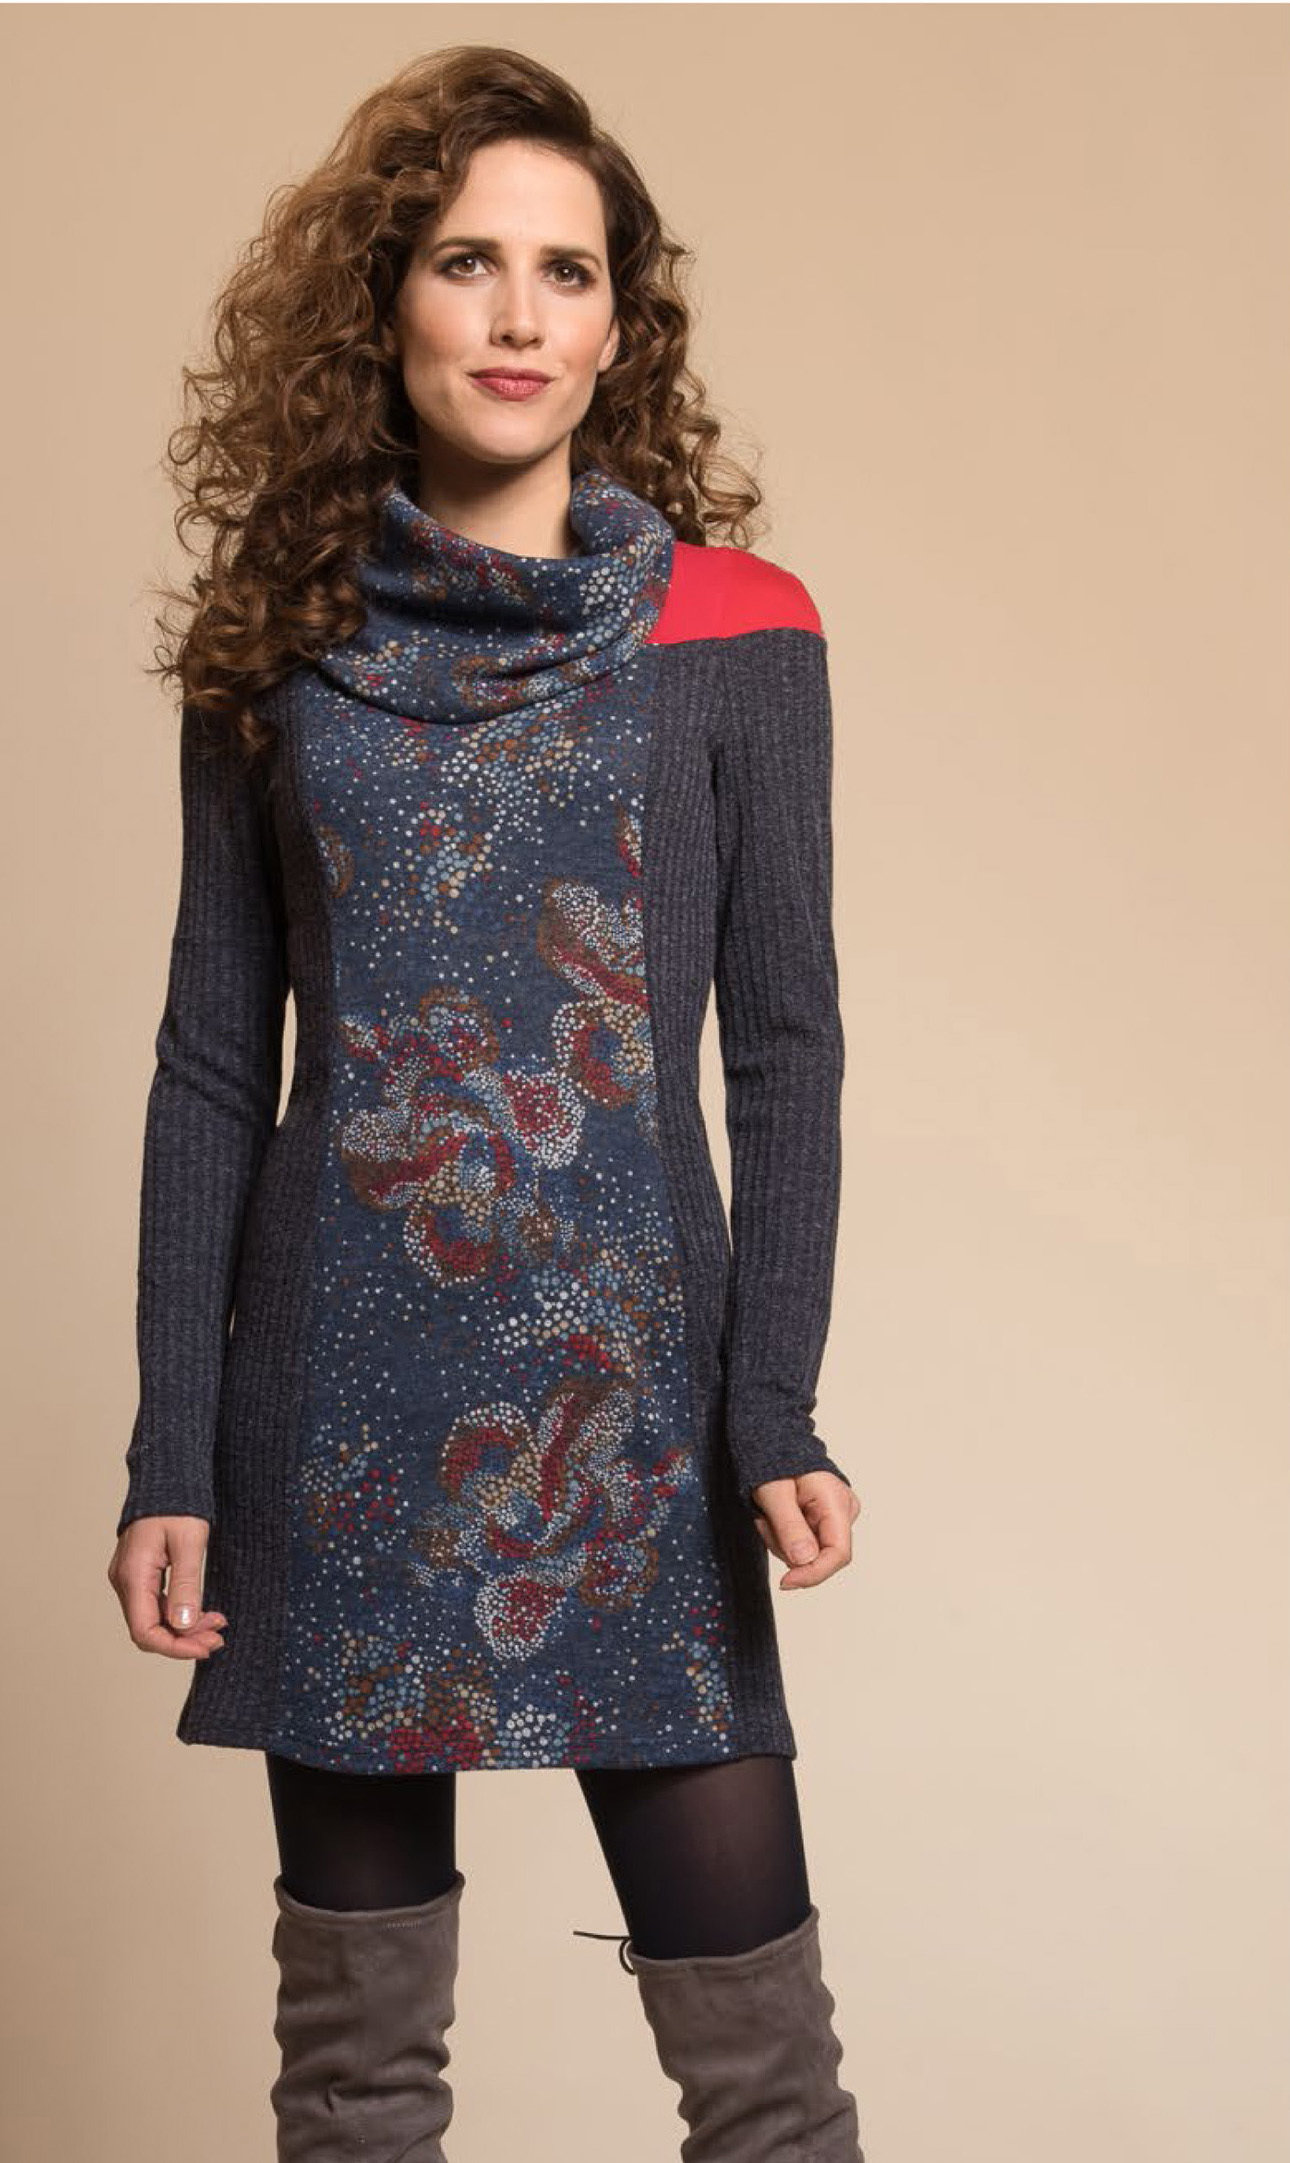 Myco Anna: Cosmic Eco-Wear Asymmetrical Patchwork Sweater Dress SOLD OUT MA_DIVERSITE_C2_N1